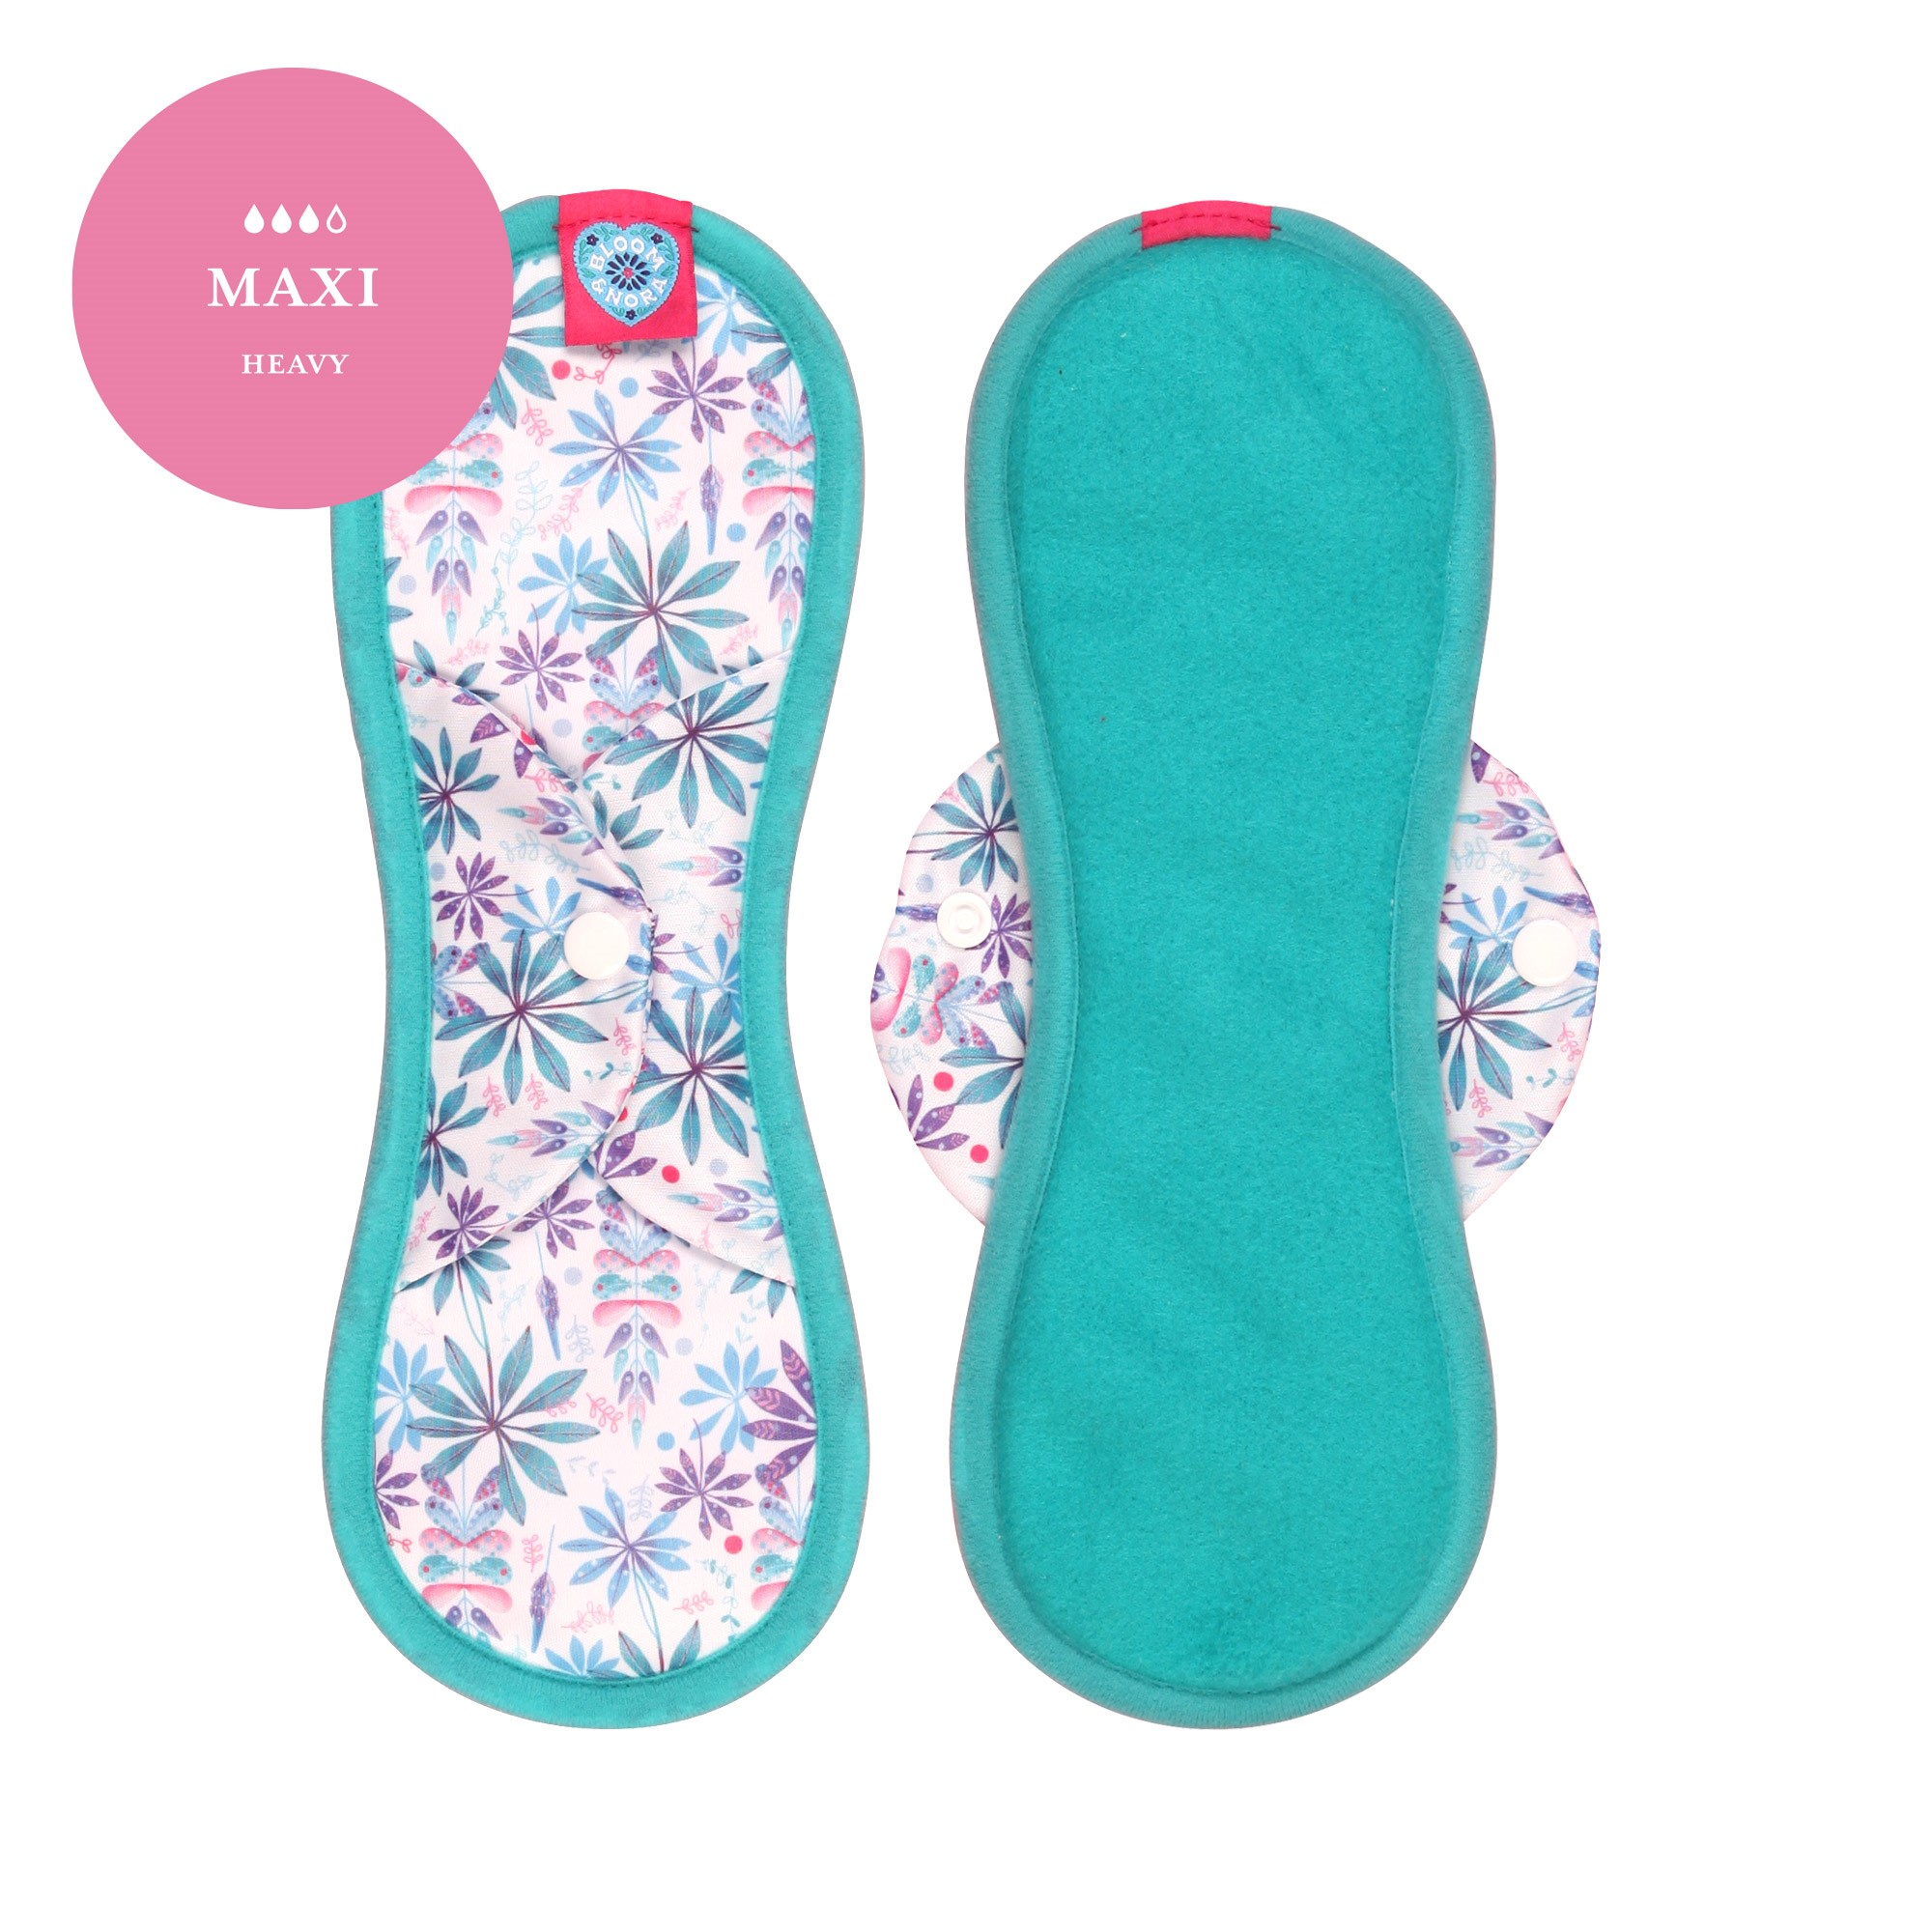 Maxi Sanitary Towel - Bloom and Nora